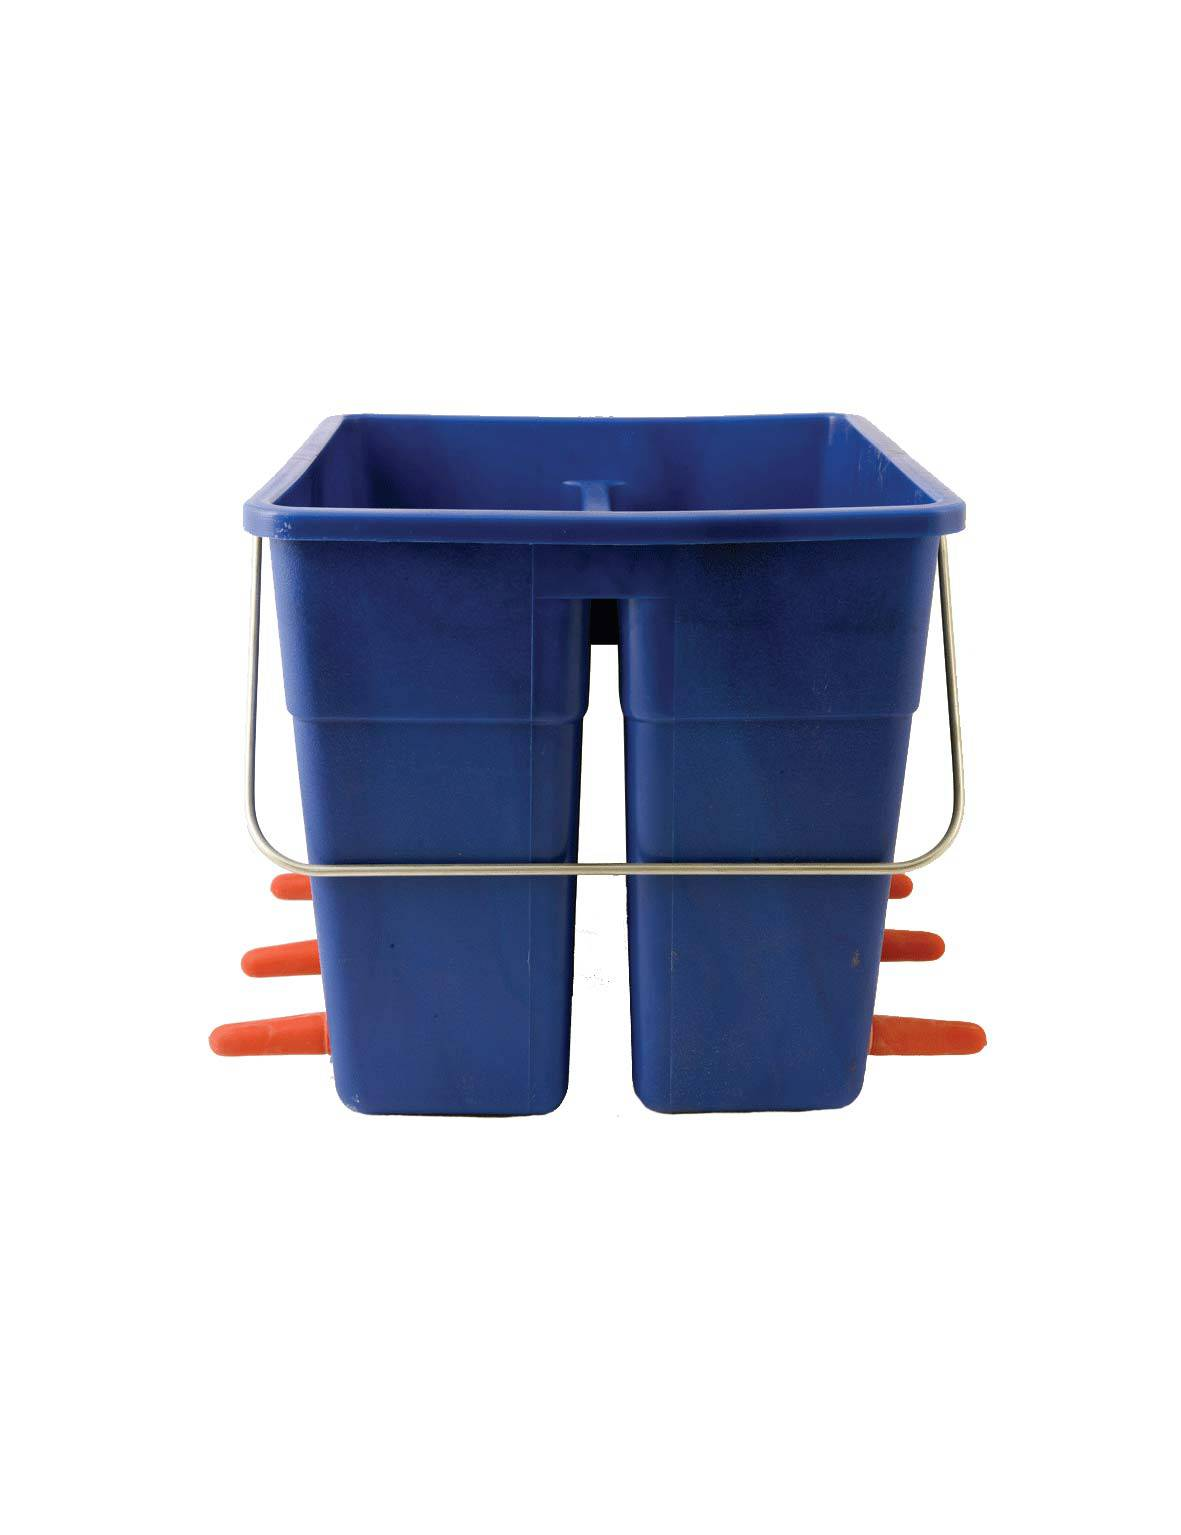 Lamb Bucket 6T C/W Valves & Teats